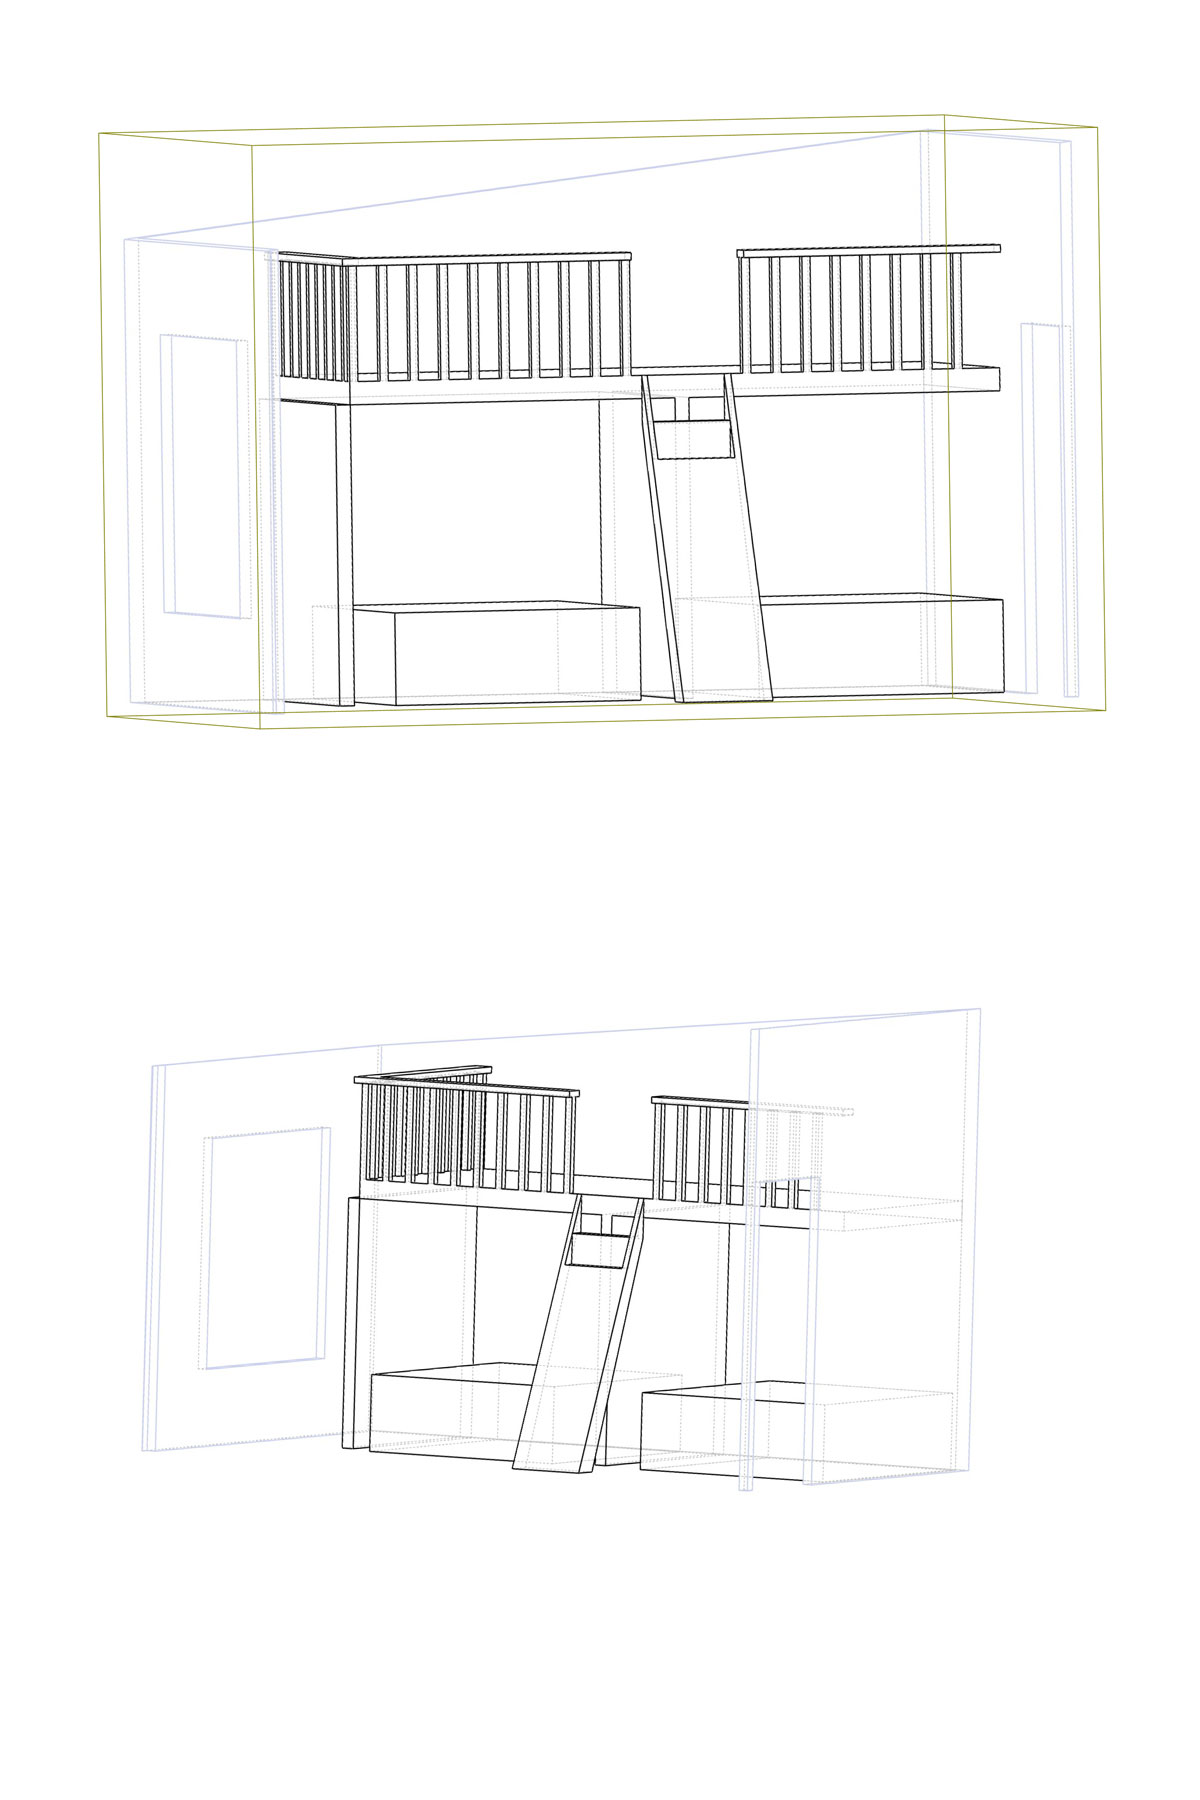 sketch of play loft set up vertically above two beds